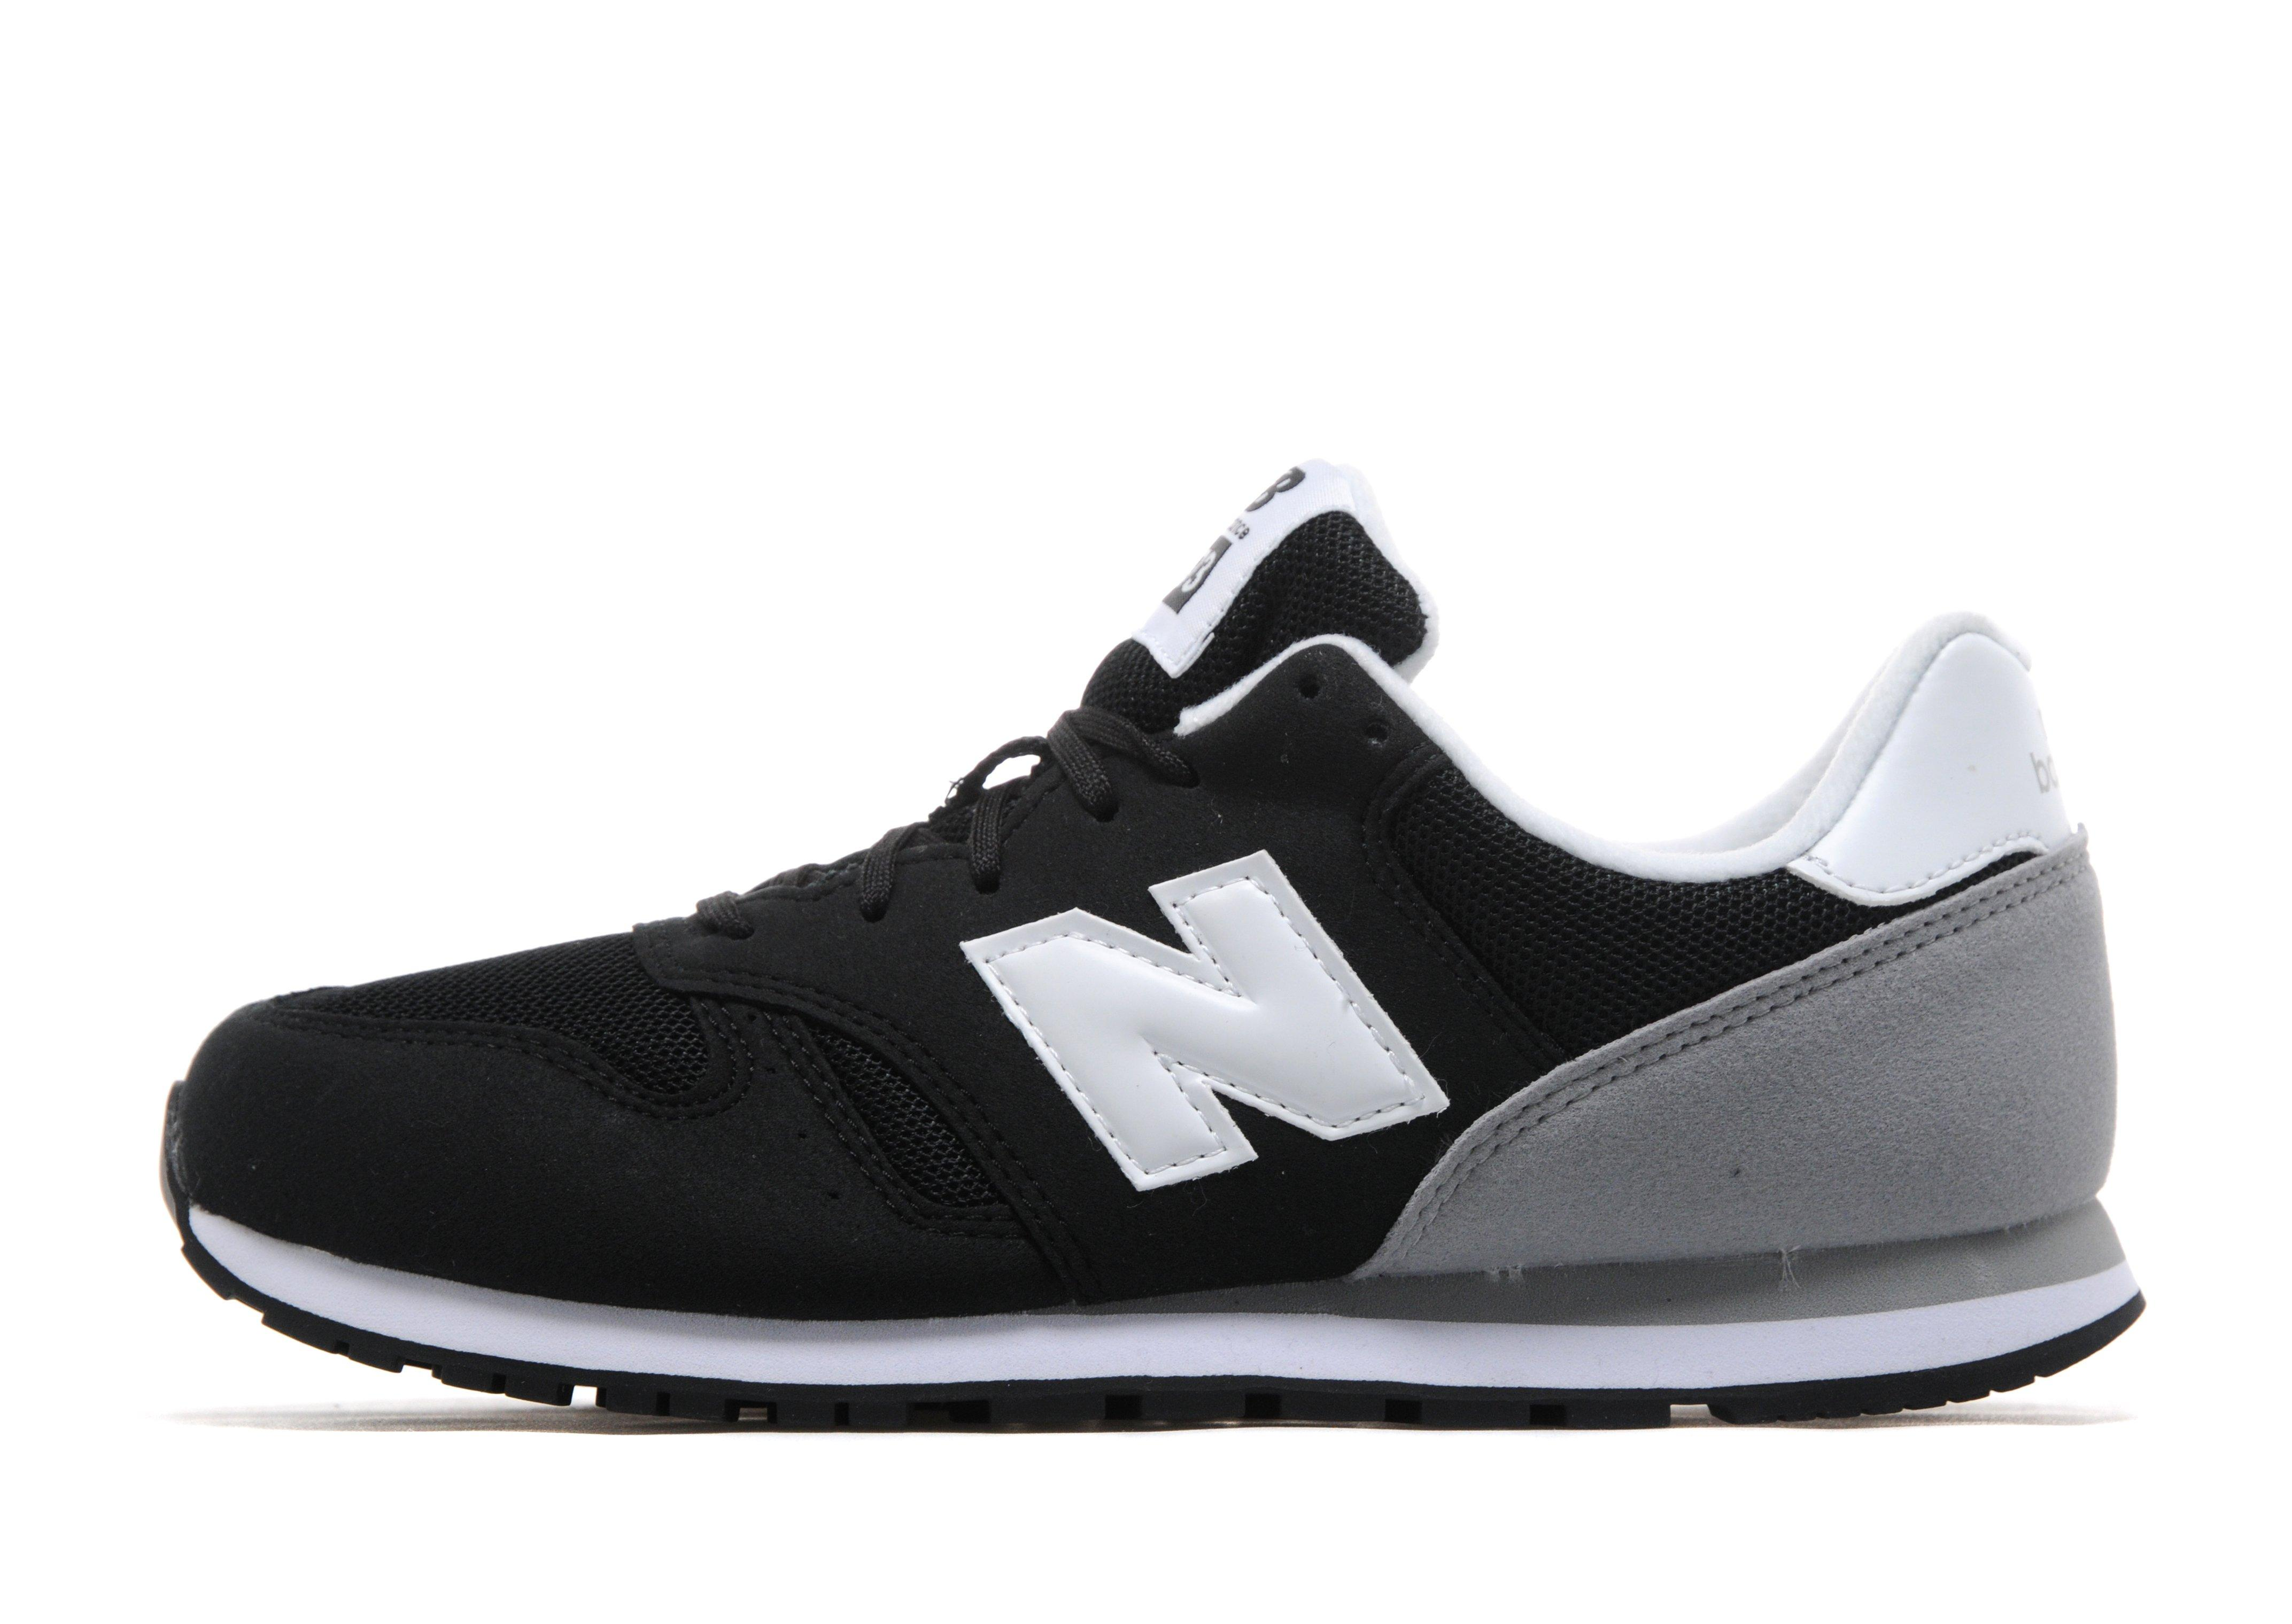 zd8fcjc8 discount new balance shoes clearance